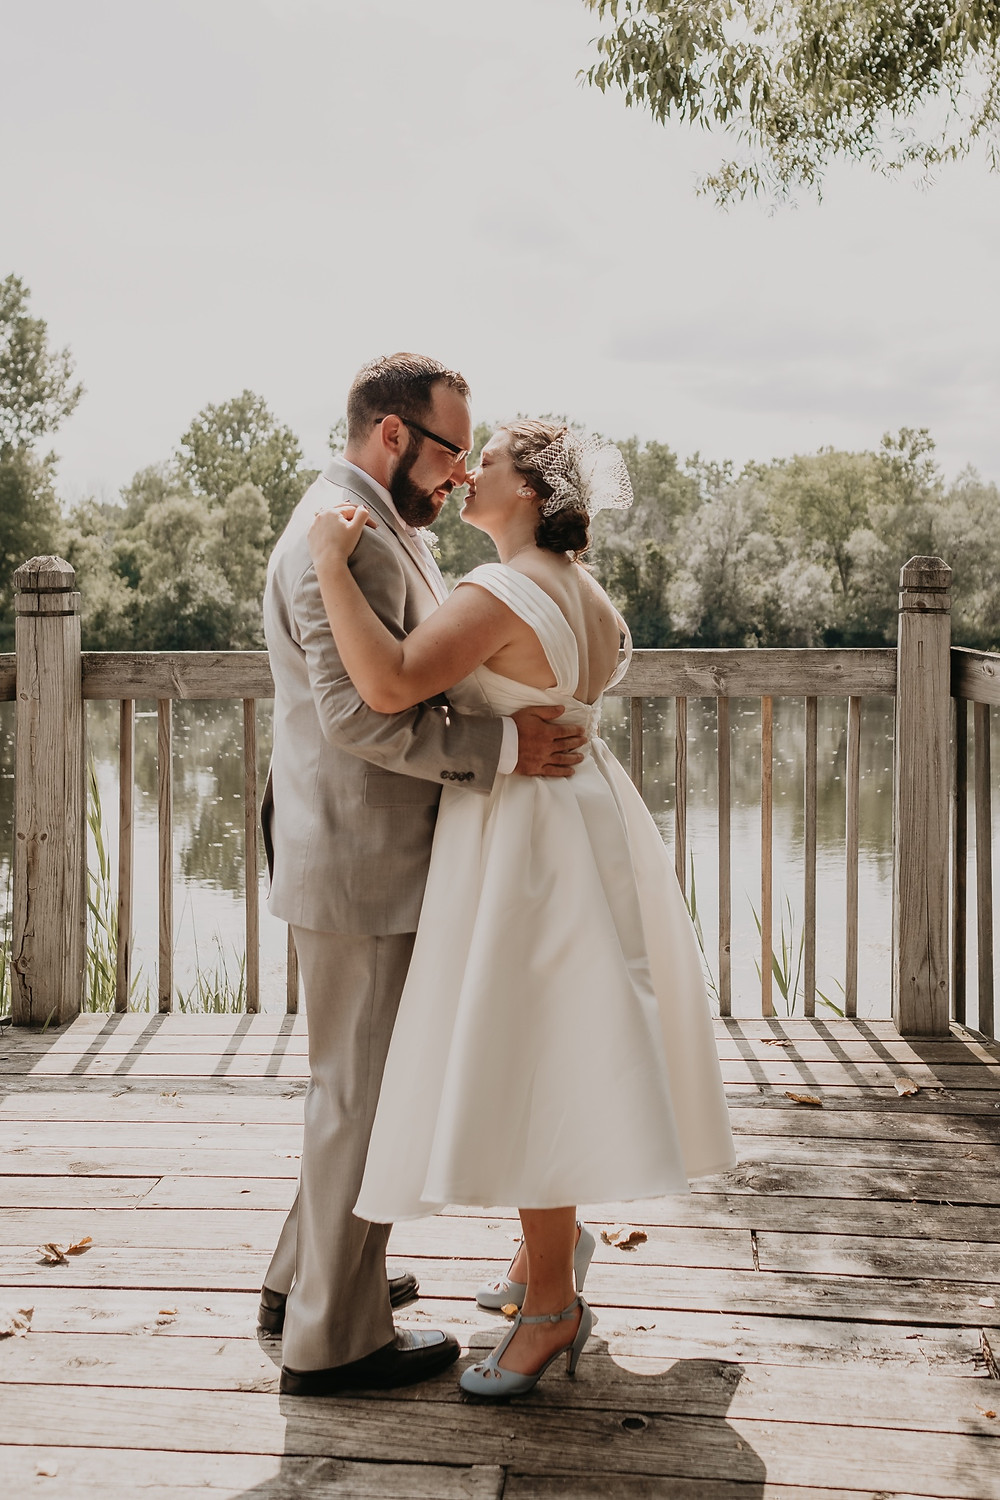 Couple sharing first dance as married couple. Photographed by Nicole Leanne Photography.